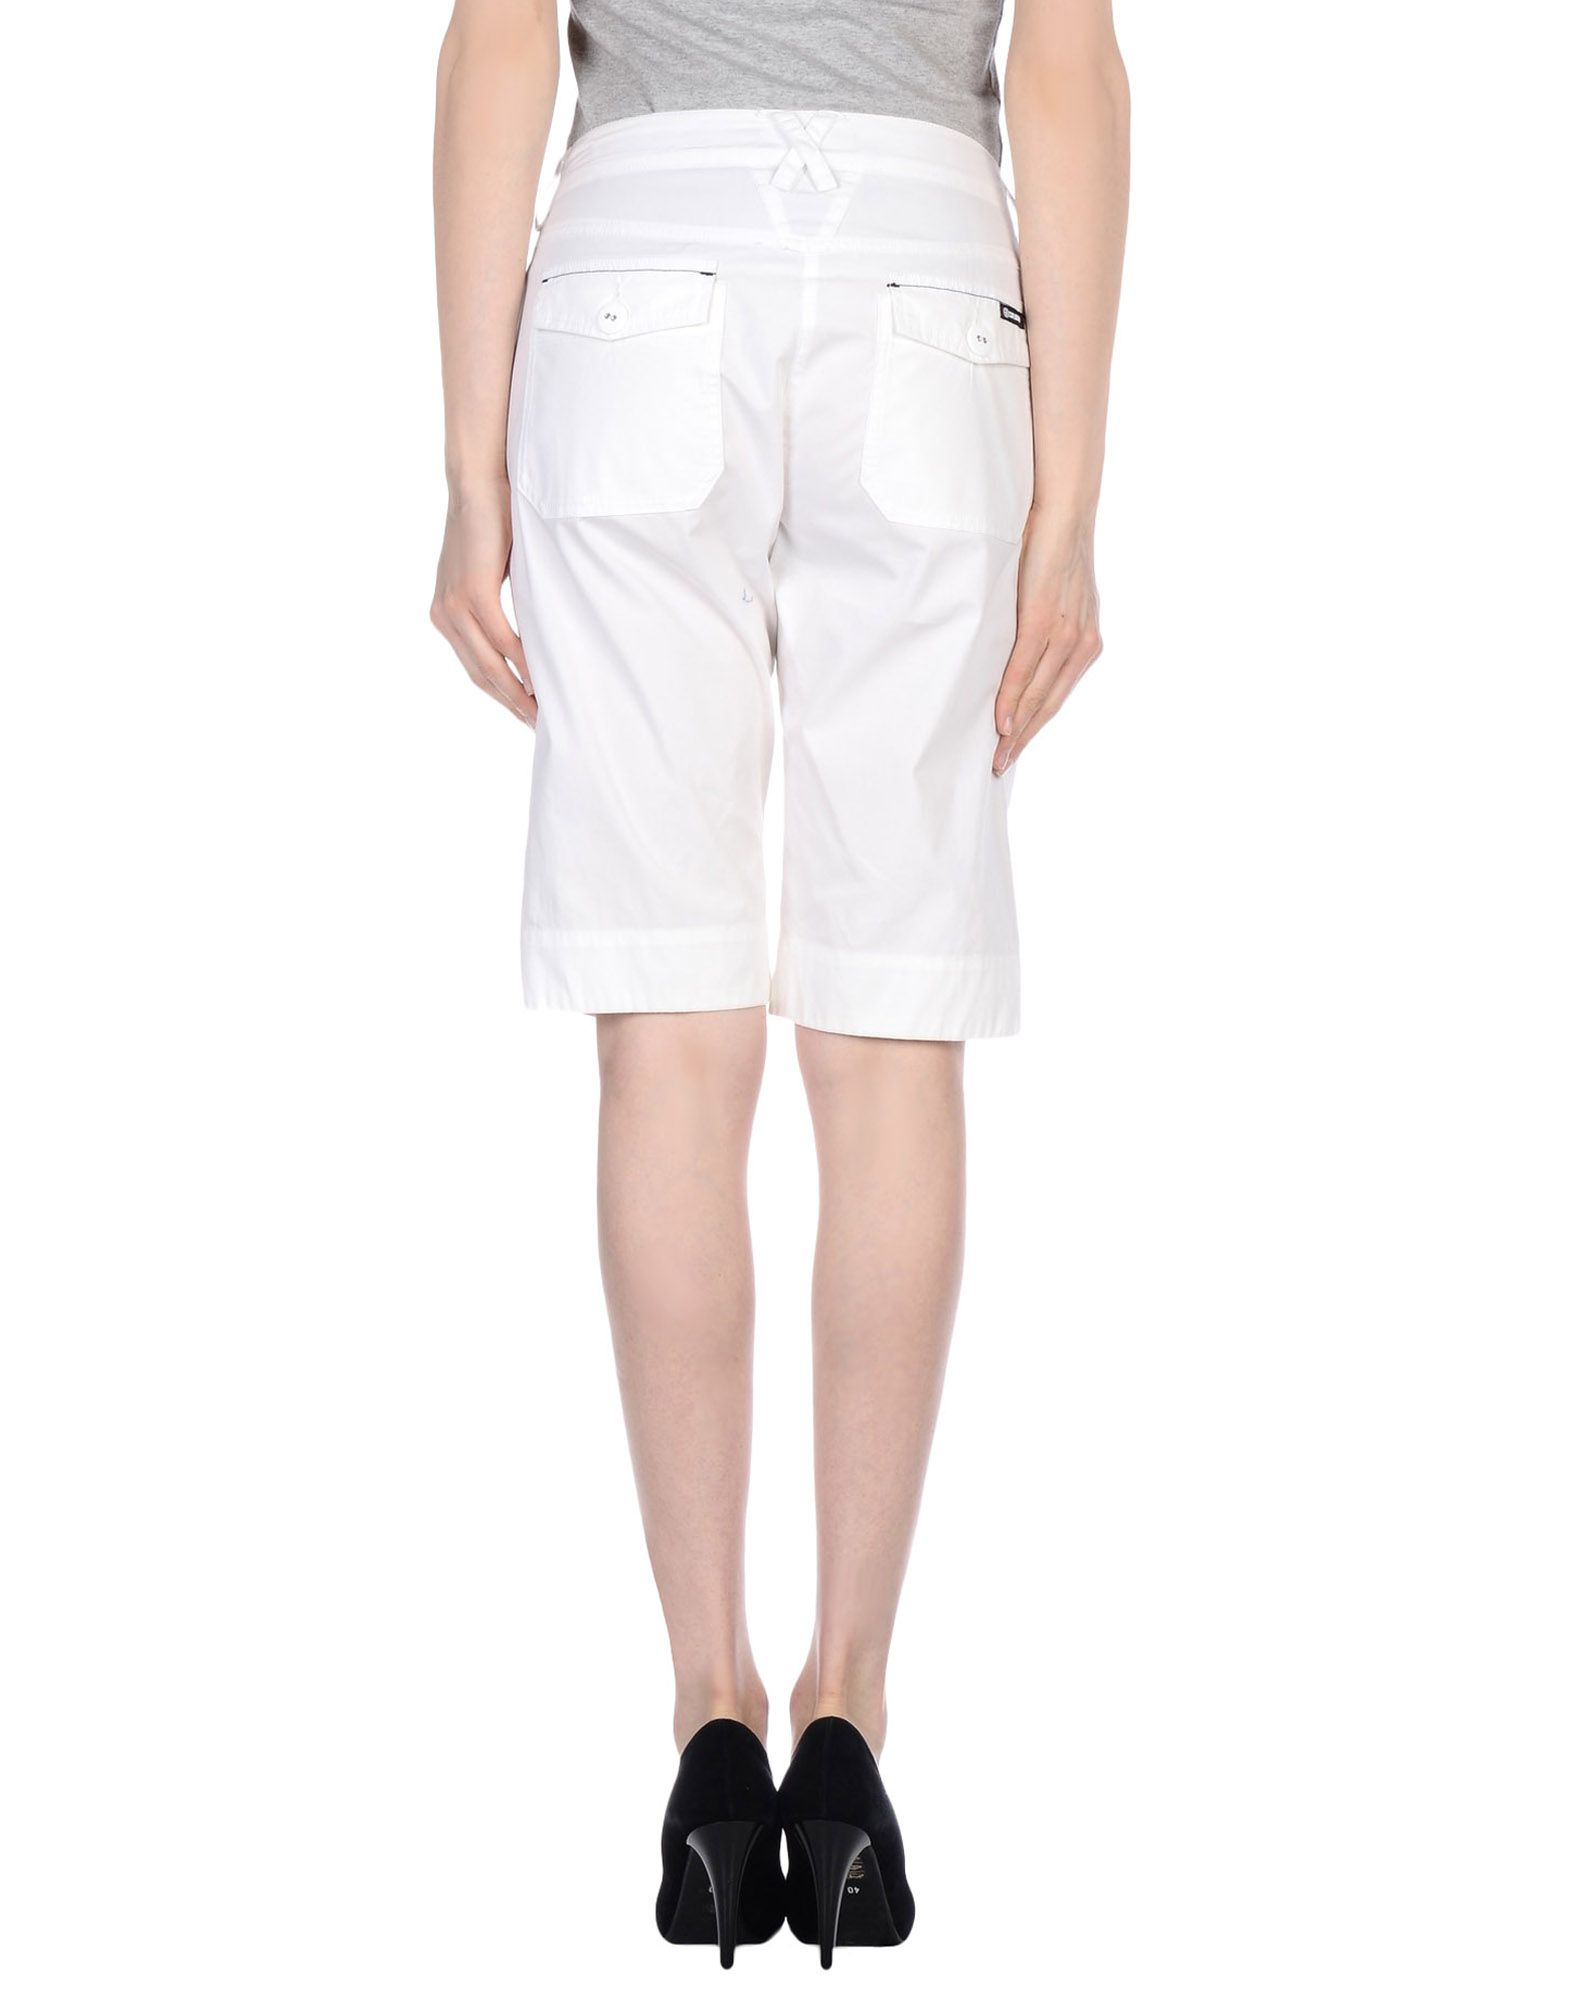 Bermuda Shorts Endlessly versatile, men's Bermuda shorts are an essential wardrobe staple that lets you mix-and-match your outfit to suit your individual style. Whether you're after something more tailored or sporty, Farfetch has curated a considered collection of innovative designs from the freshest labels.